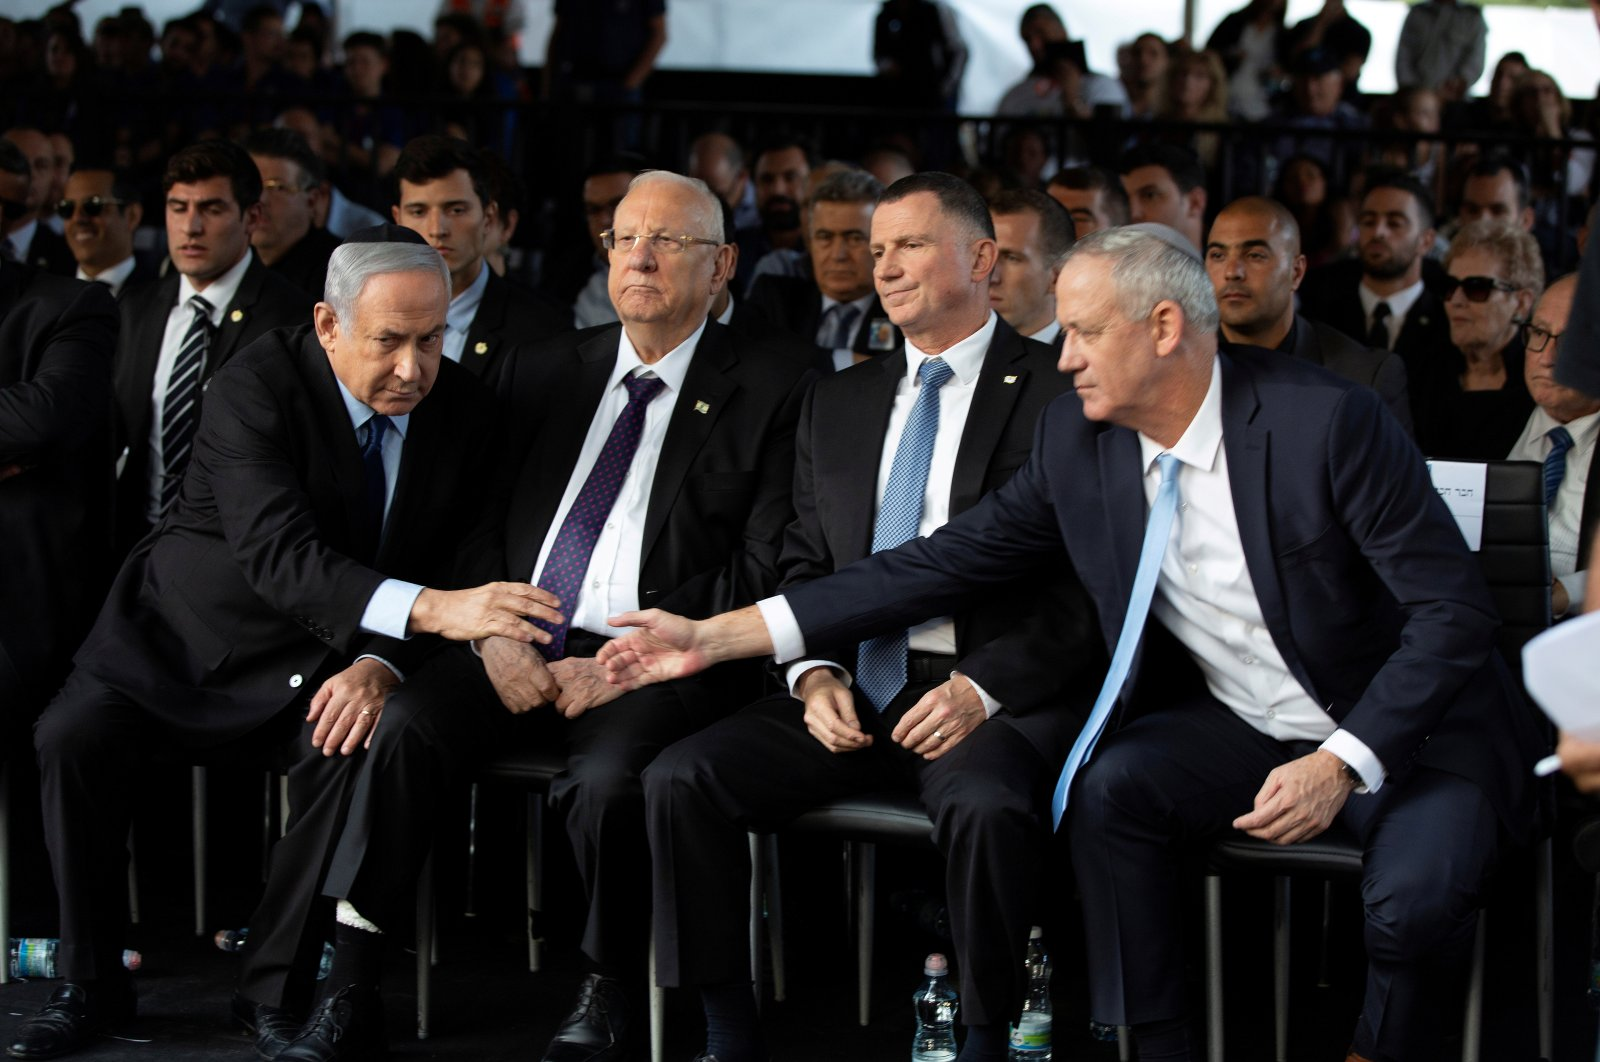 Head of Israel's Blue and White Party Benny Gantz and Israeli Prime Minister Benjamin Netanyahu shake hands, Jerusalem, Nov. 10, 2019. (REUTERS Photo)